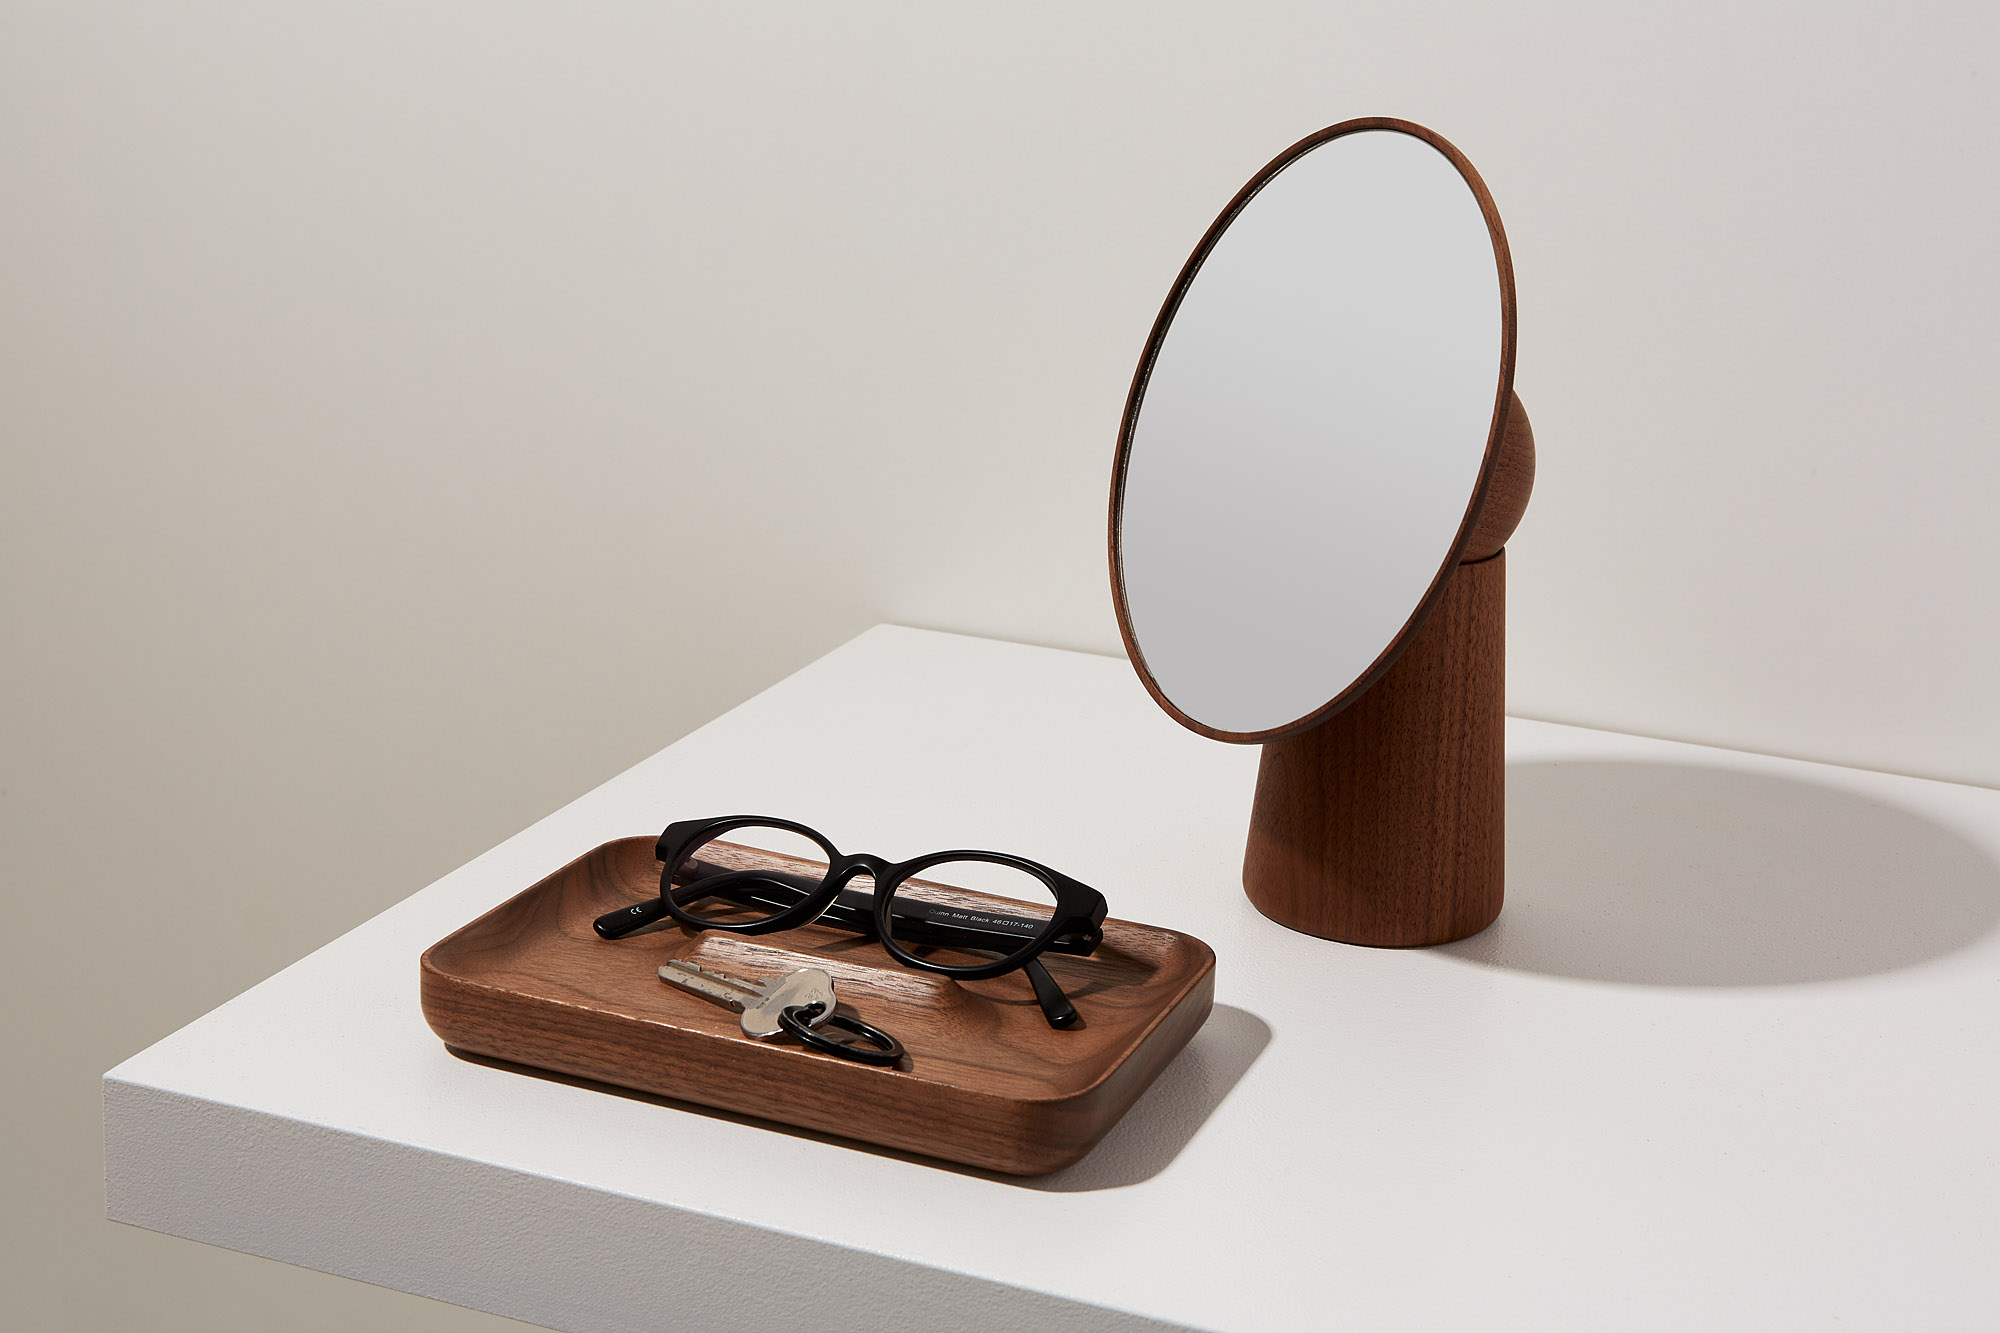 ANDEN Tray and Mirror.jpg